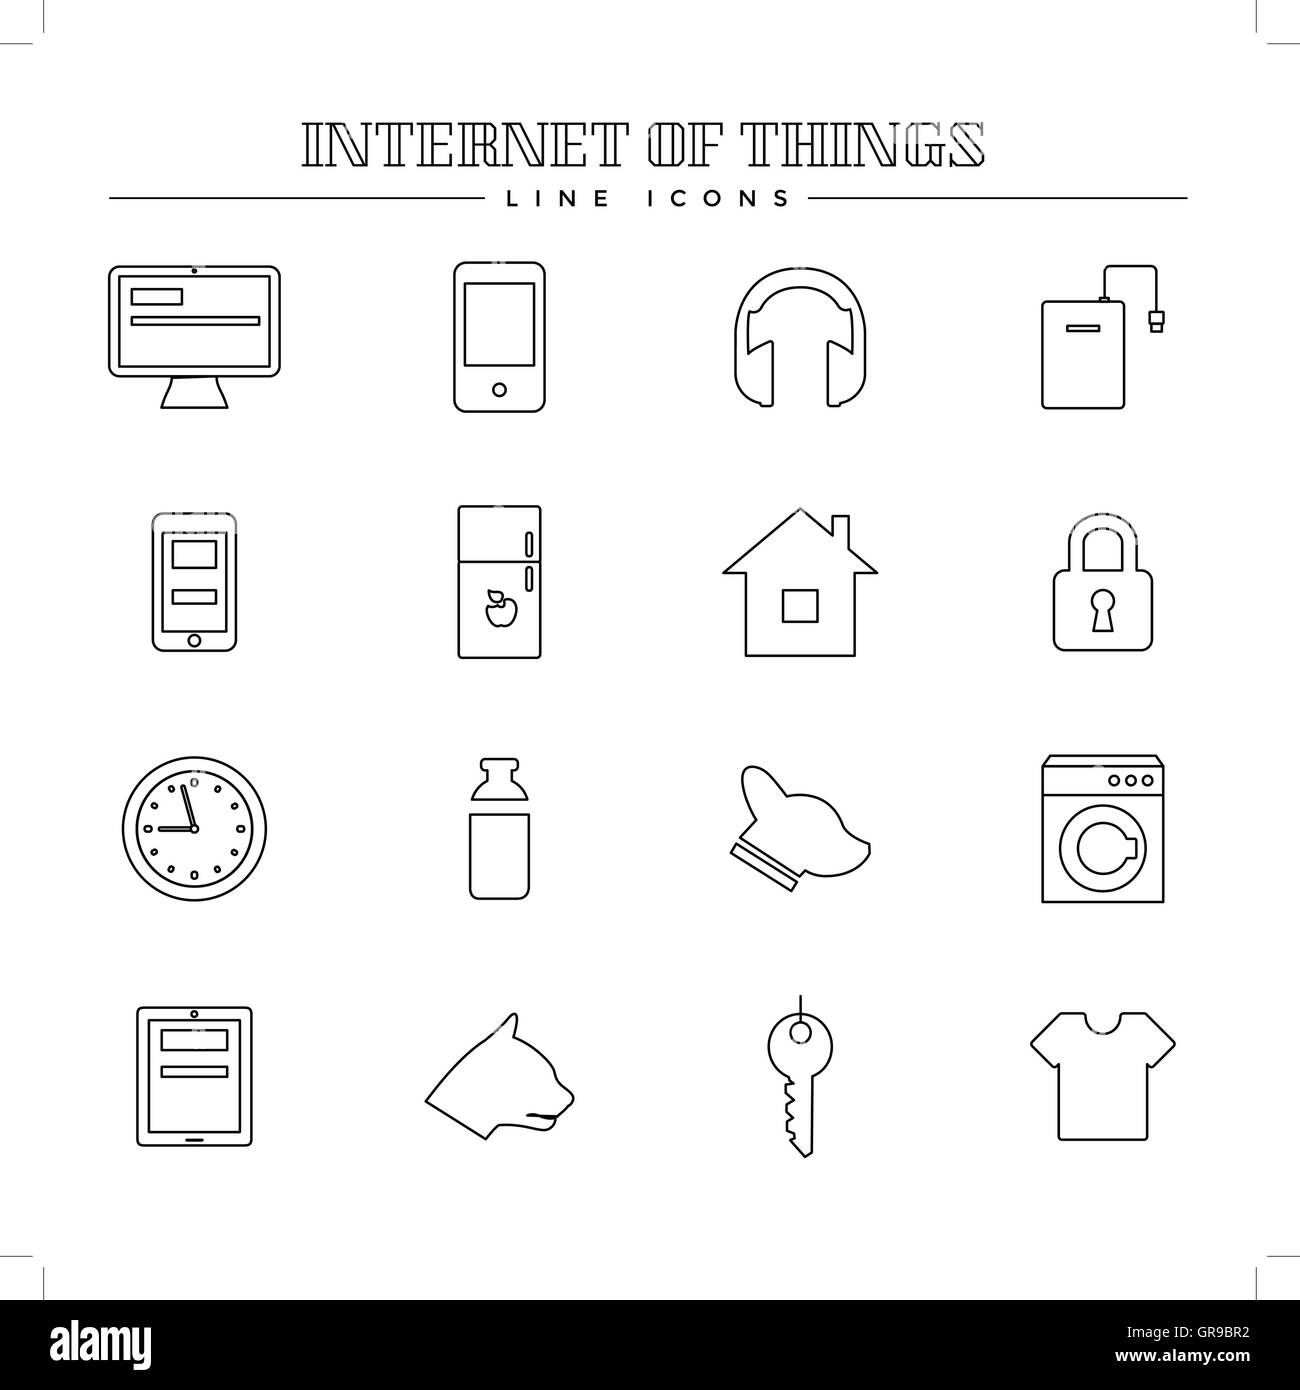 Internet of things and smart home, line icons set - Stock Image